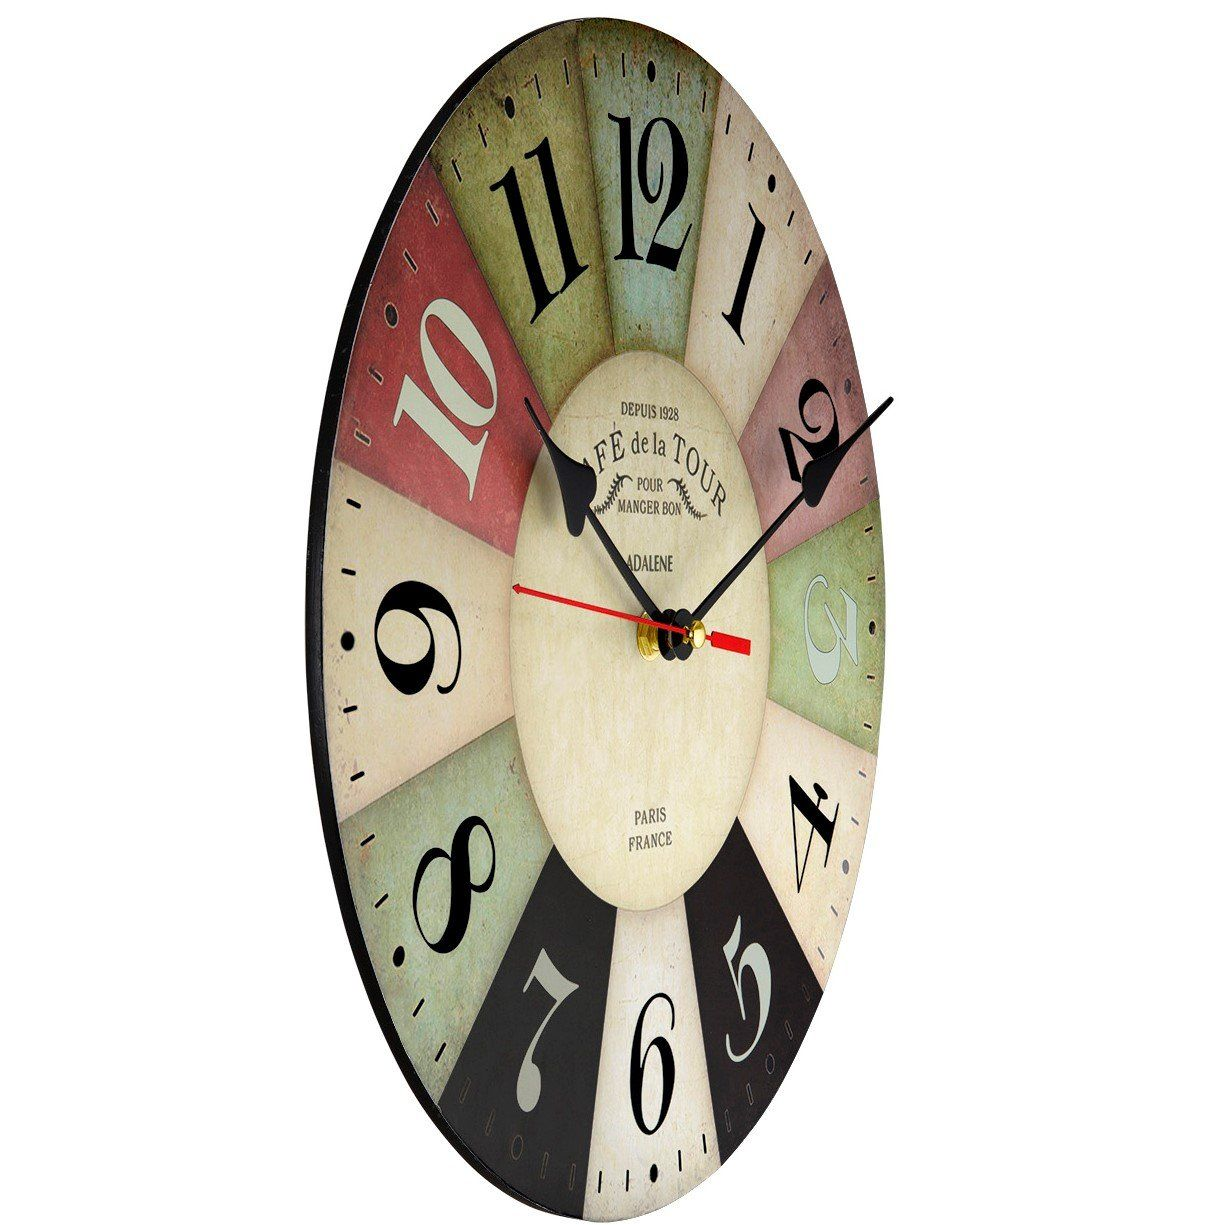 Adalene Wall Clocks Battery Operated Non Ticking 12 Inch Vintage Colorful Wood Wall Clock Silent Analog Quartz Wall Clock Silent Wall Clock Large Wall Clock